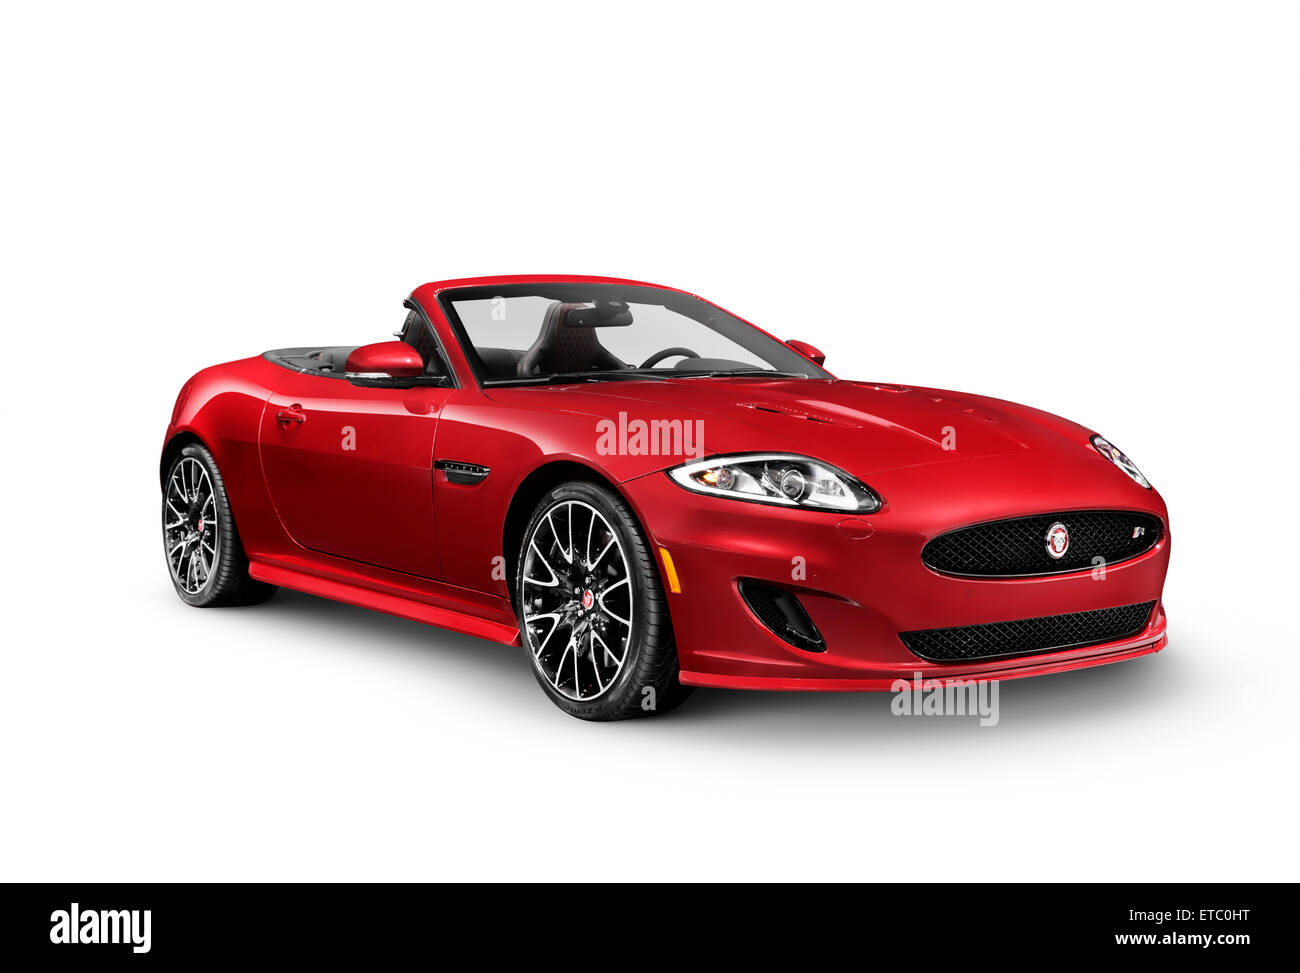 Red 2014 Jaguar XKR convertible luxury sports car isolated on white background with clipping path - Stock Image